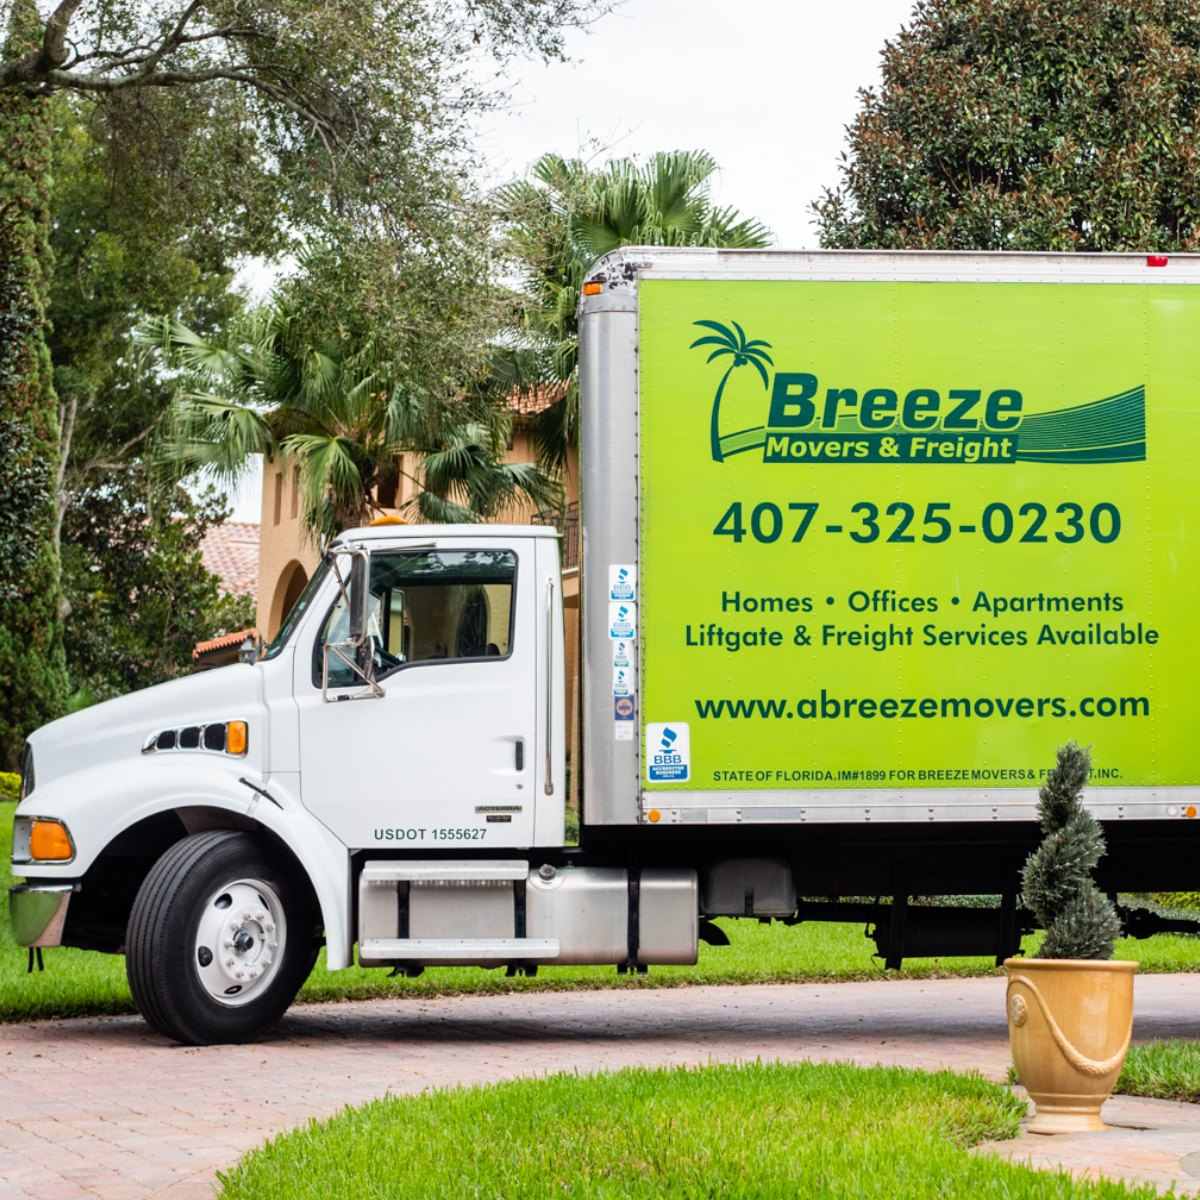 A Breeze Movers truck